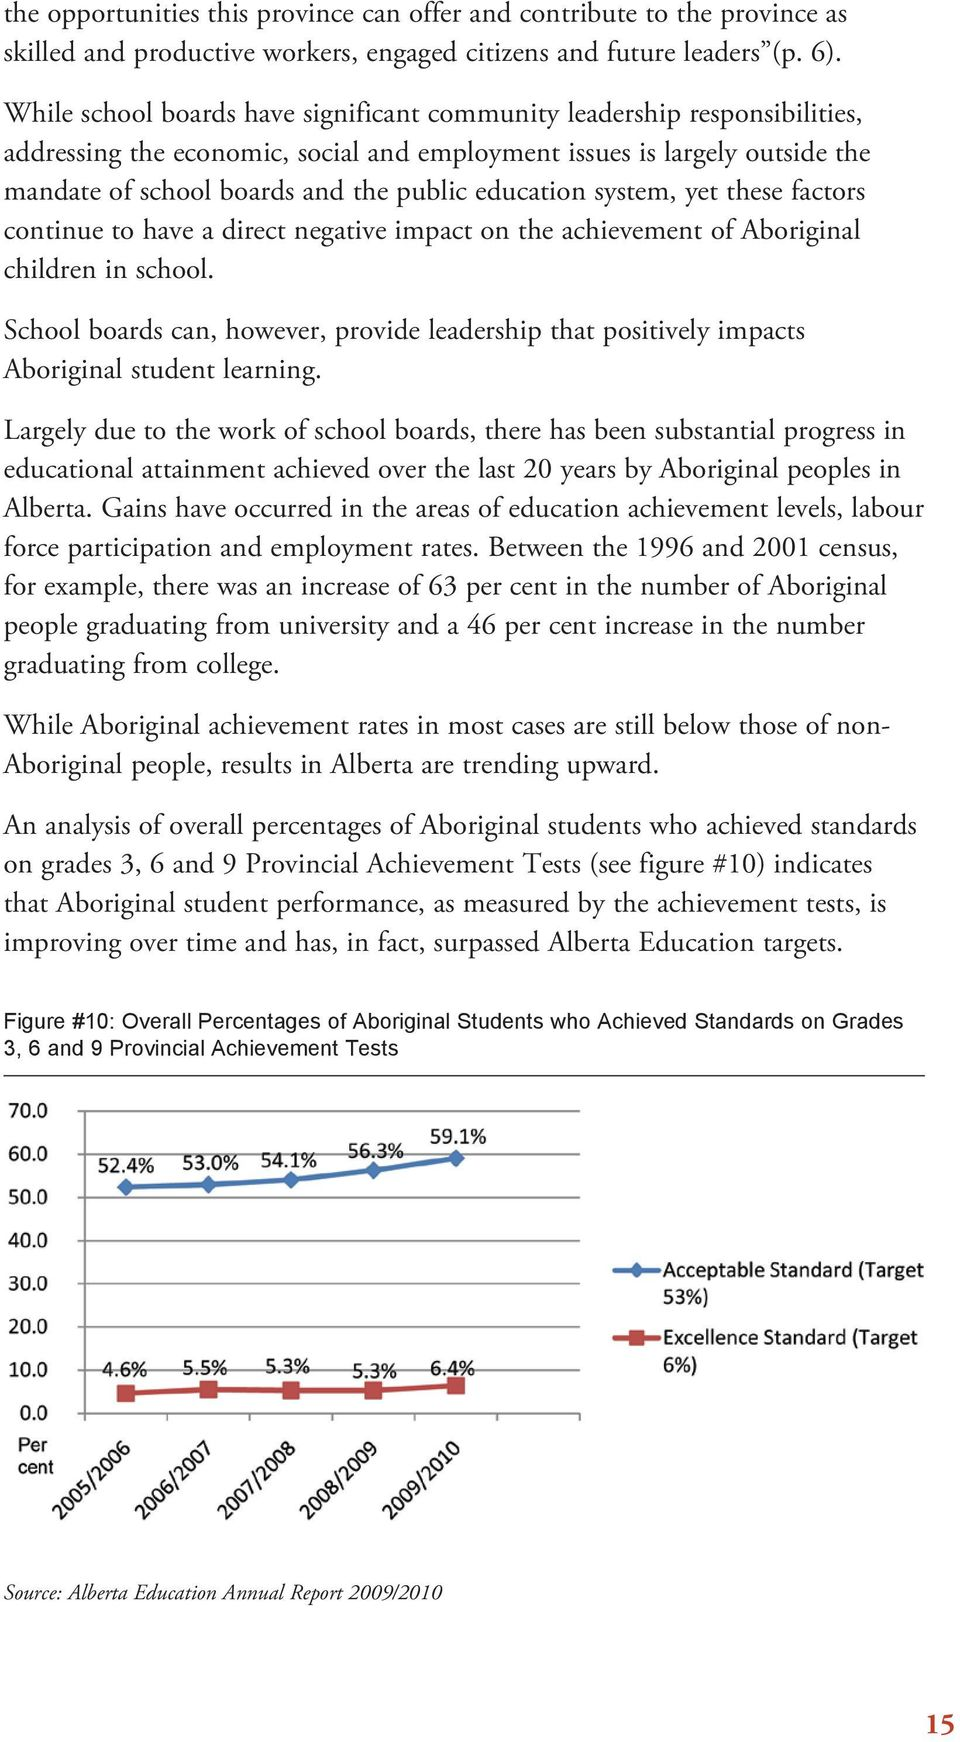 education system, yet these factors continue to have a direct negative impact on the achievement of Aboriginal children in school.